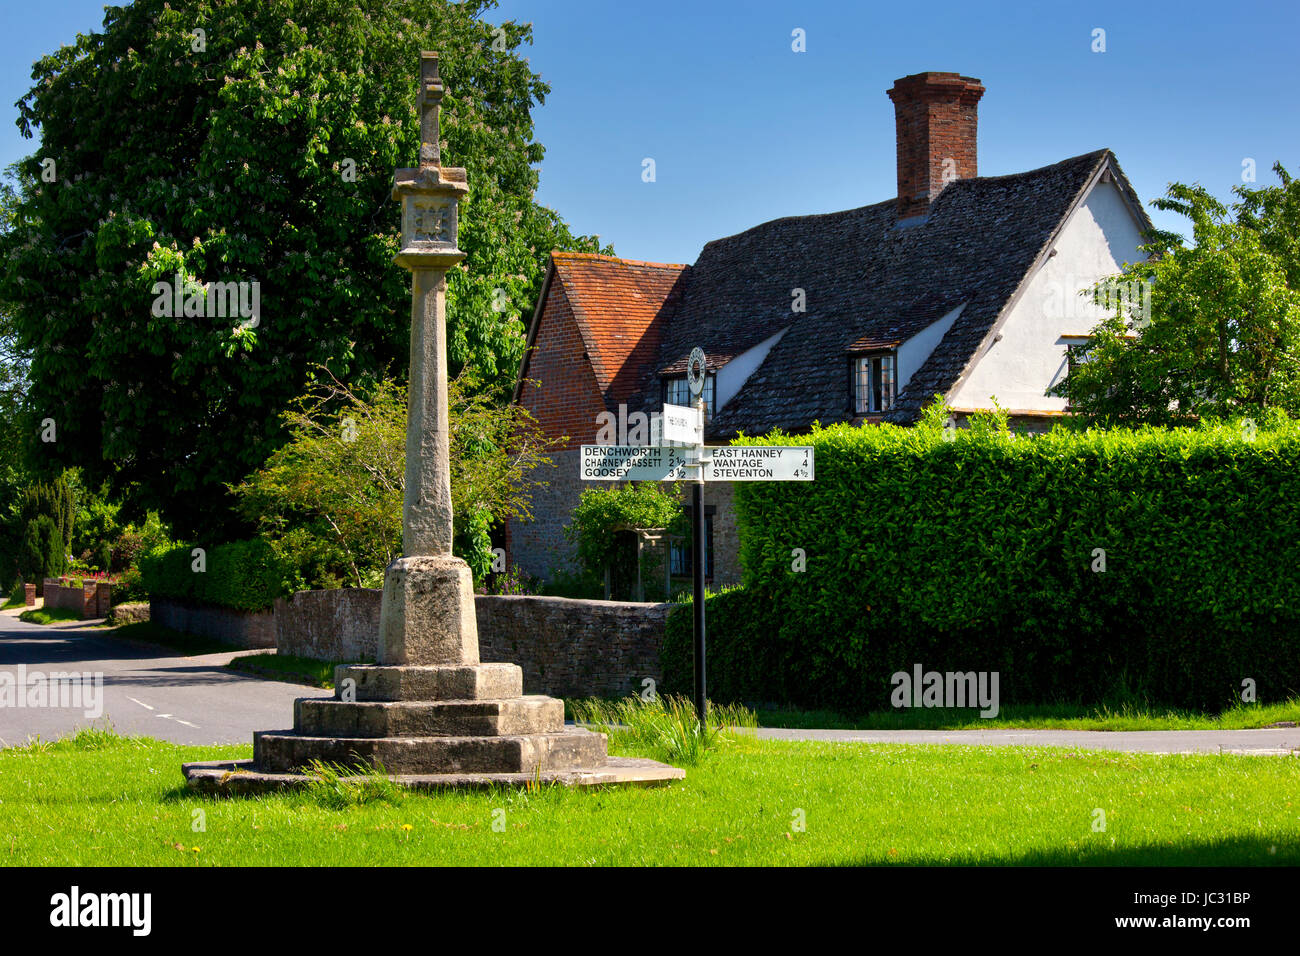 village green, war memorial and street sign in village of West Hanney, Oxfordshire,England - Stock Image